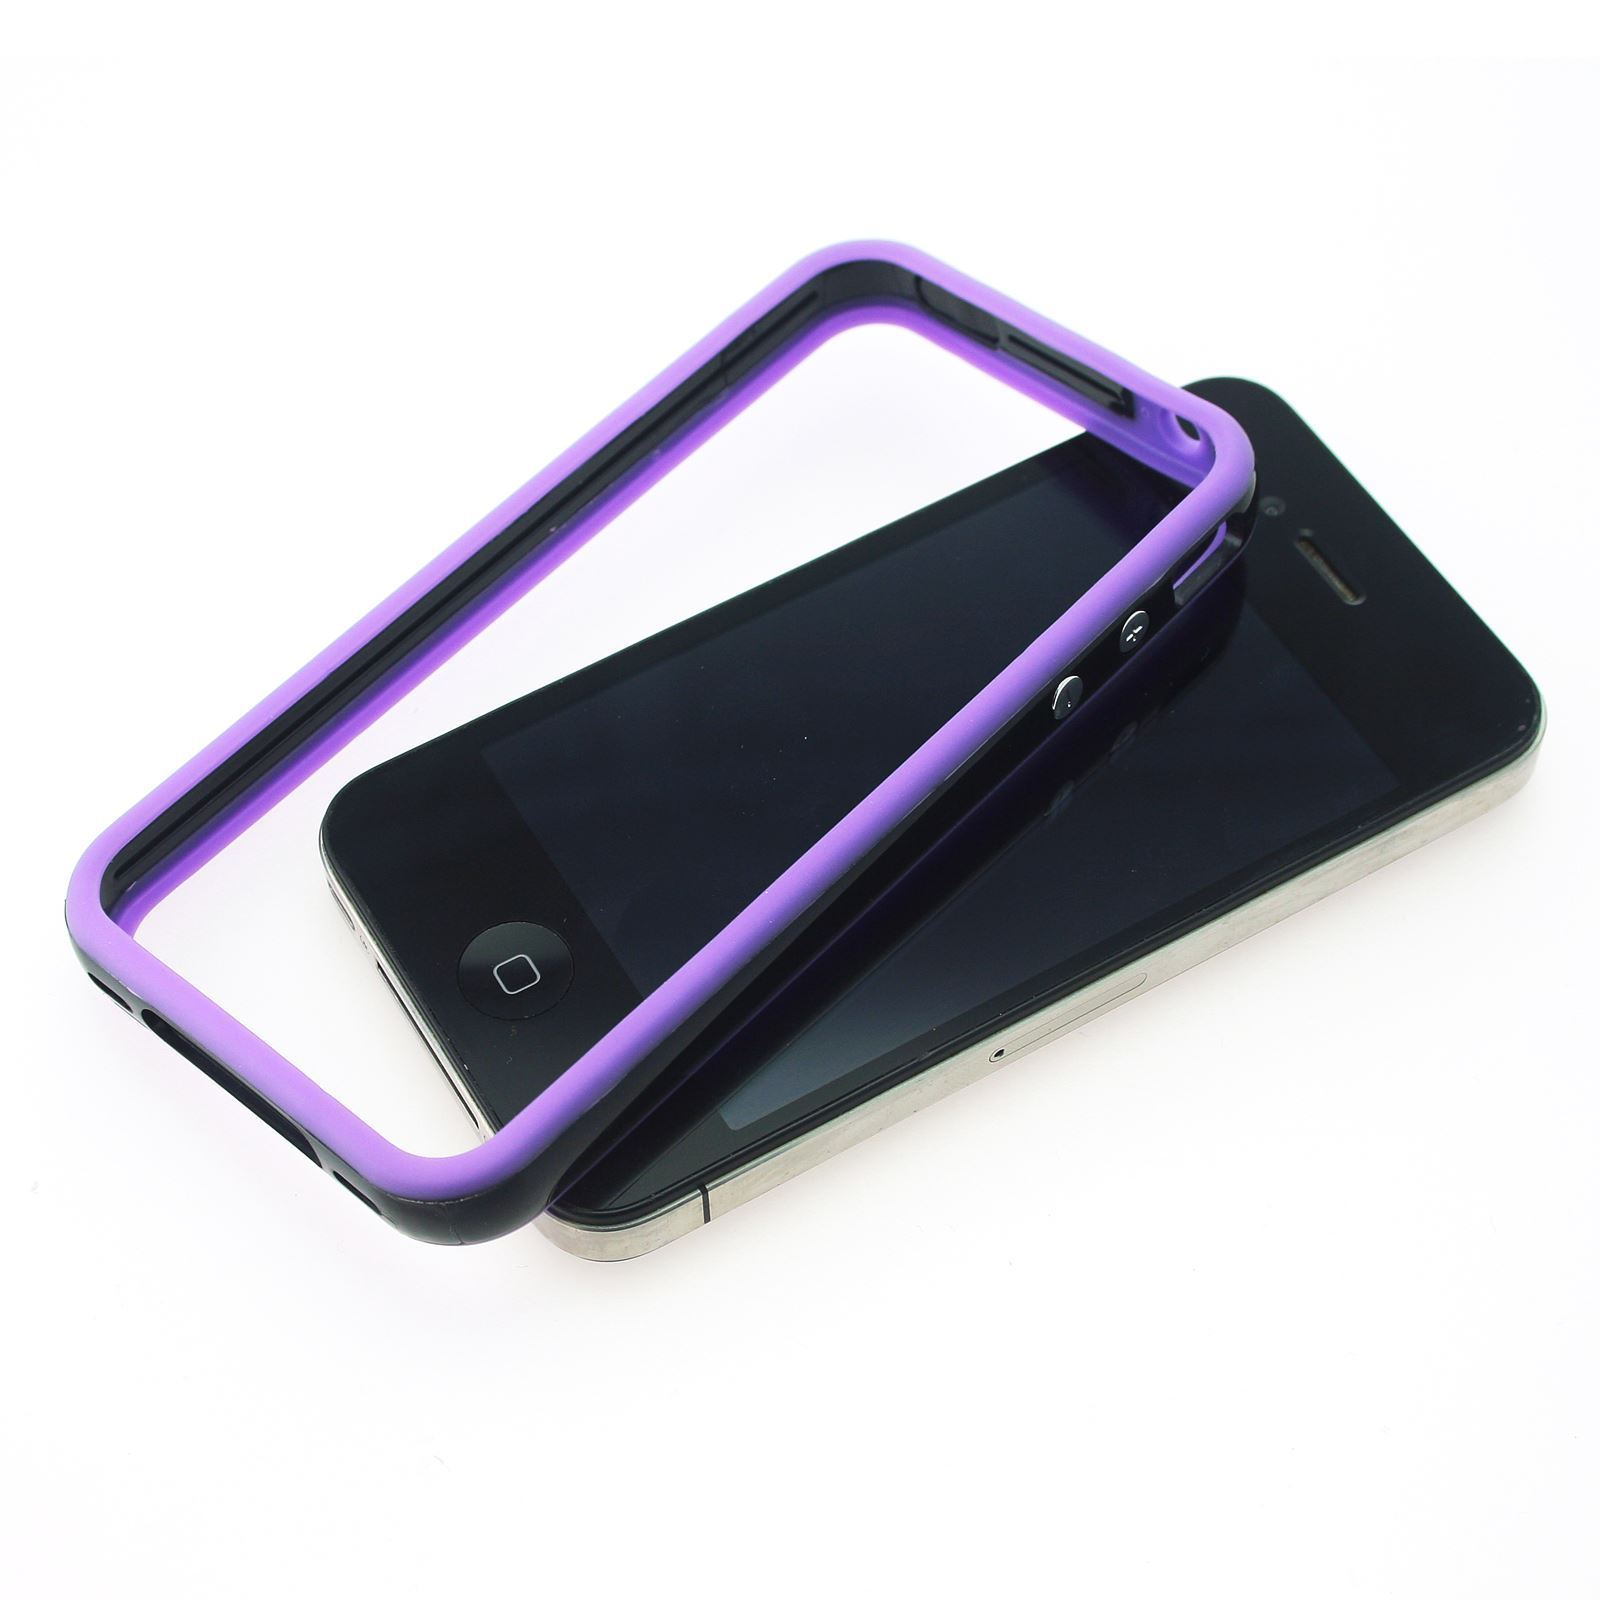 DUAL-COLOUR-BUMPER-FRAME-W-BUILT-IN-BUTTONS-SILICONE-CASE-COVER-FOR-IPHONE-4-4S miniatuur 15